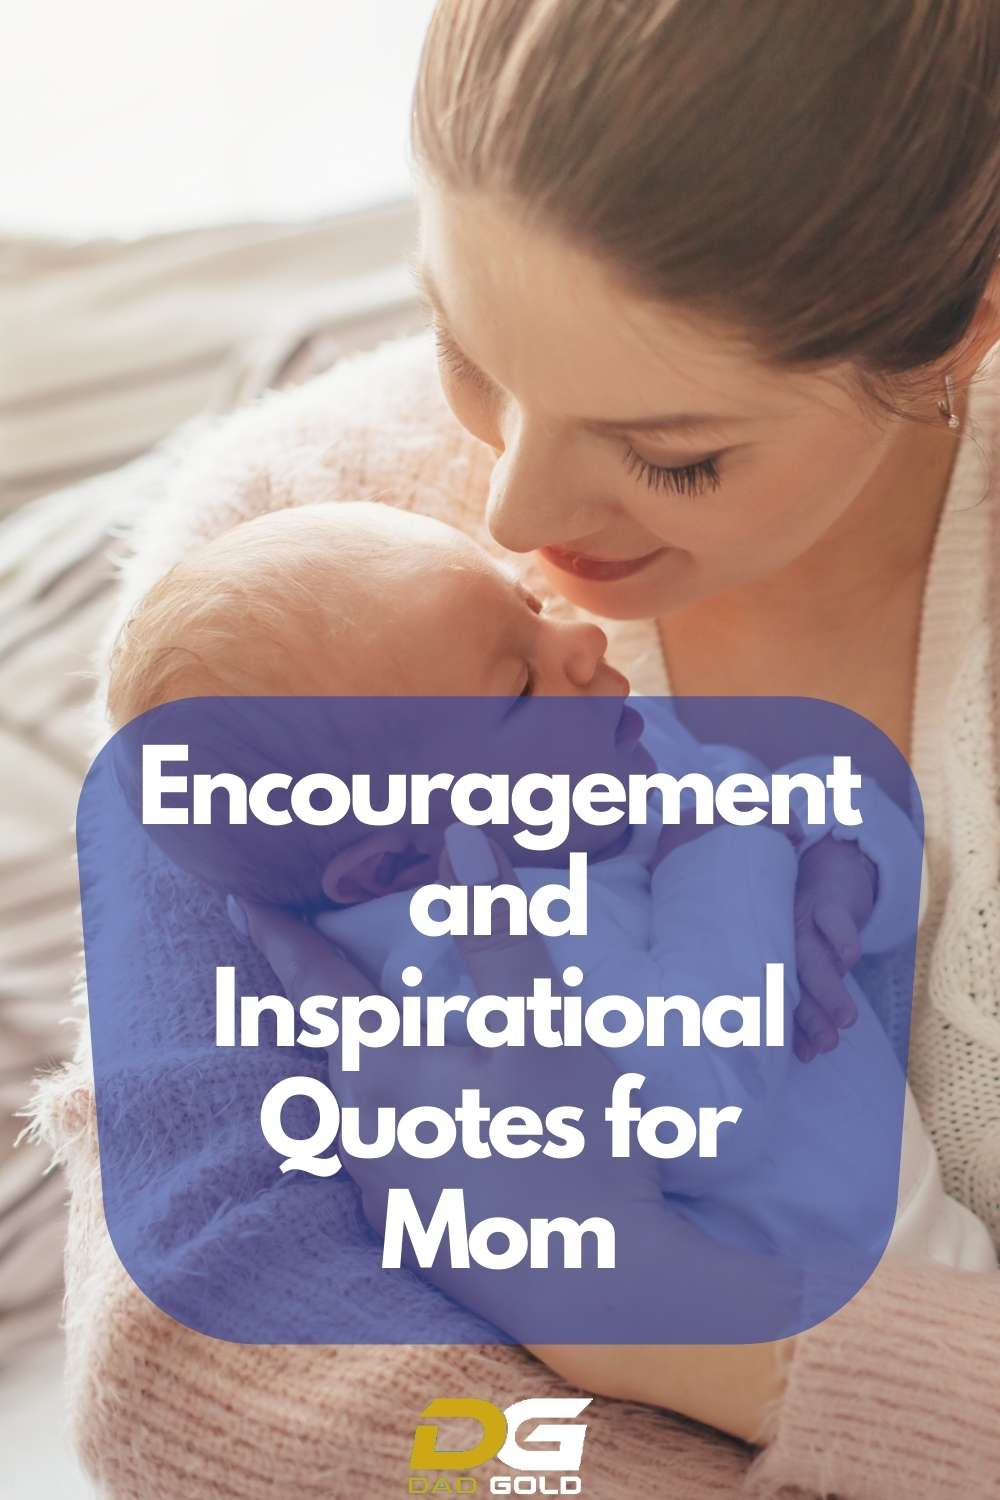 Encouragement and Inspirational Quotes for Mom dadgodl parenting tips